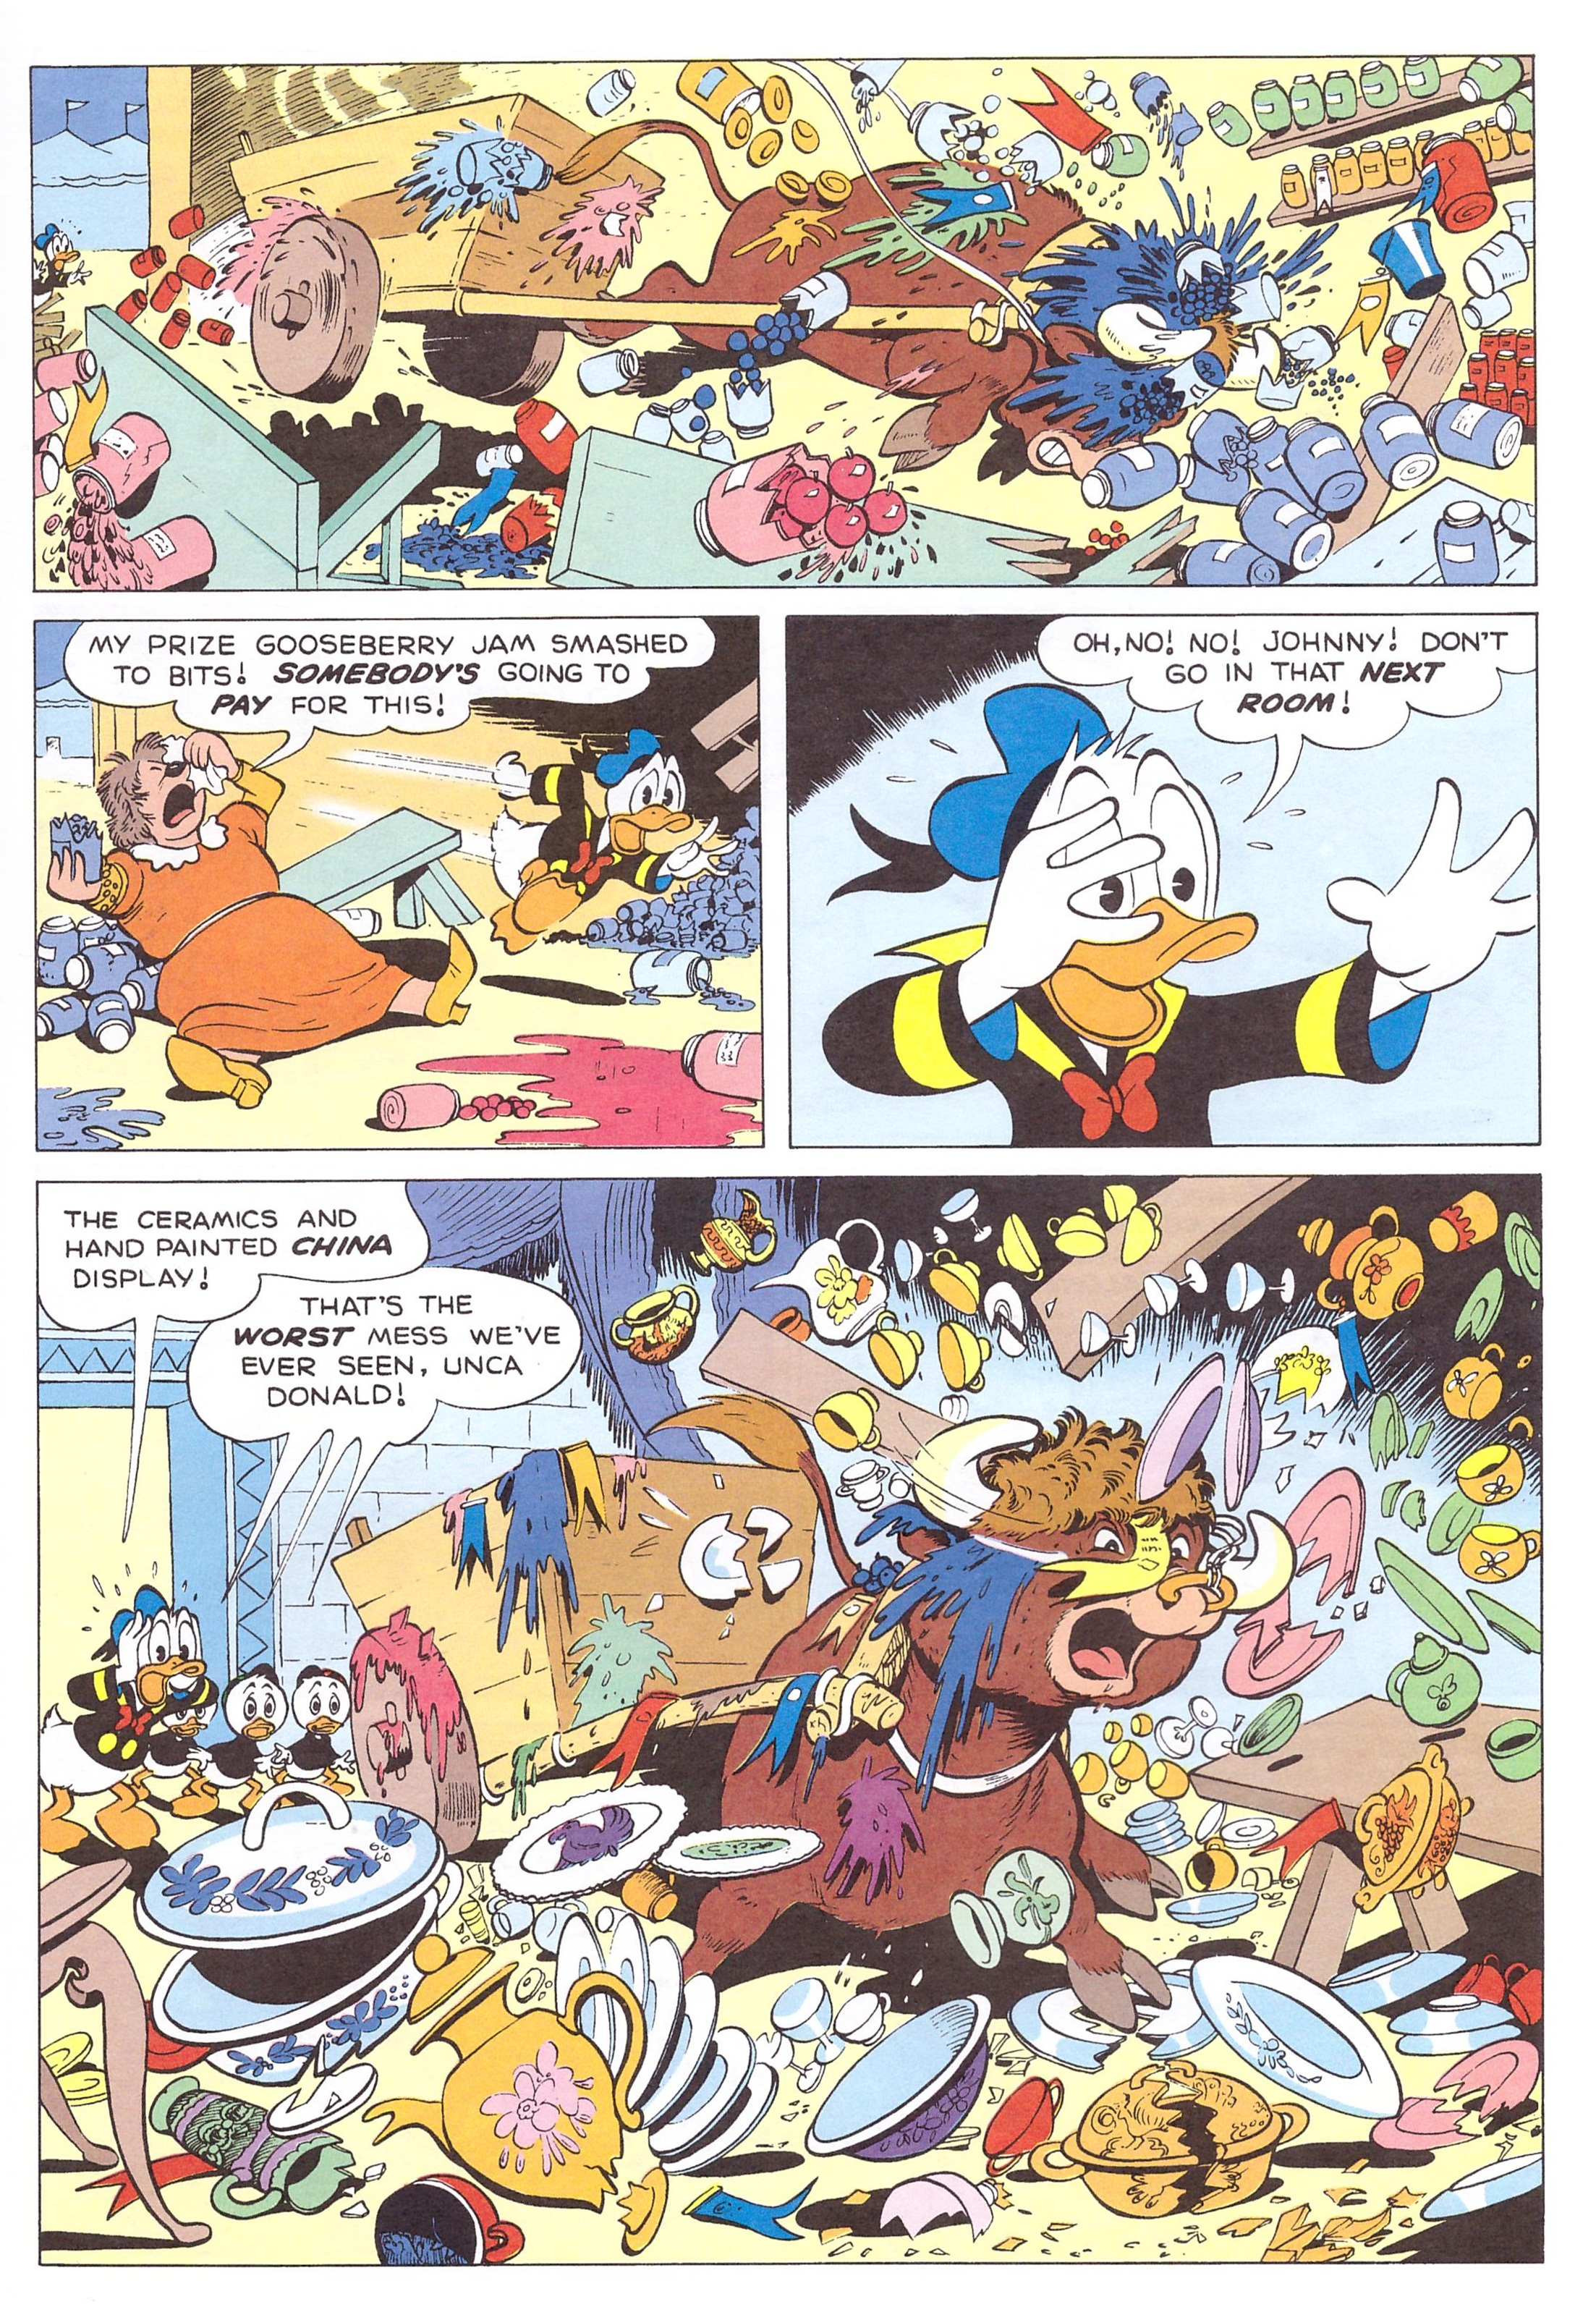 Walt Disney Comics and Stories by Carl Barks 29 review